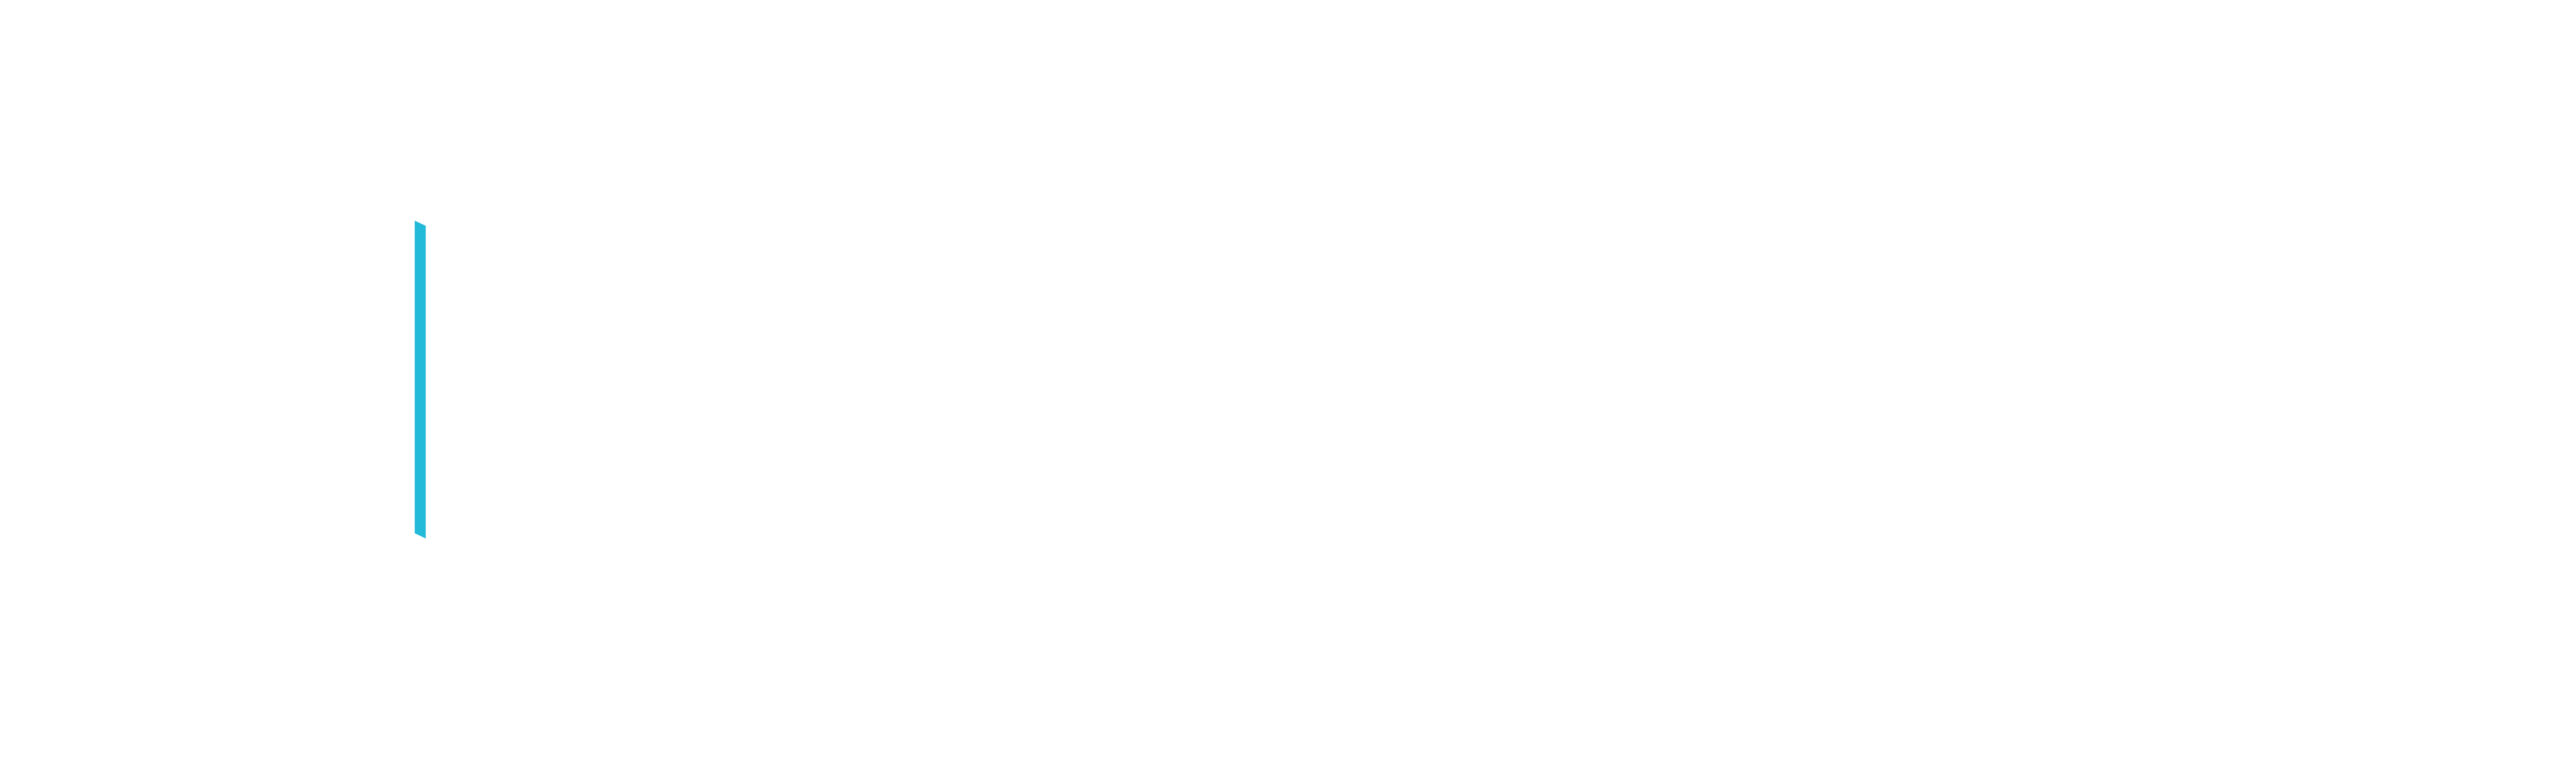 Faculty of Music Sciences and Technologies